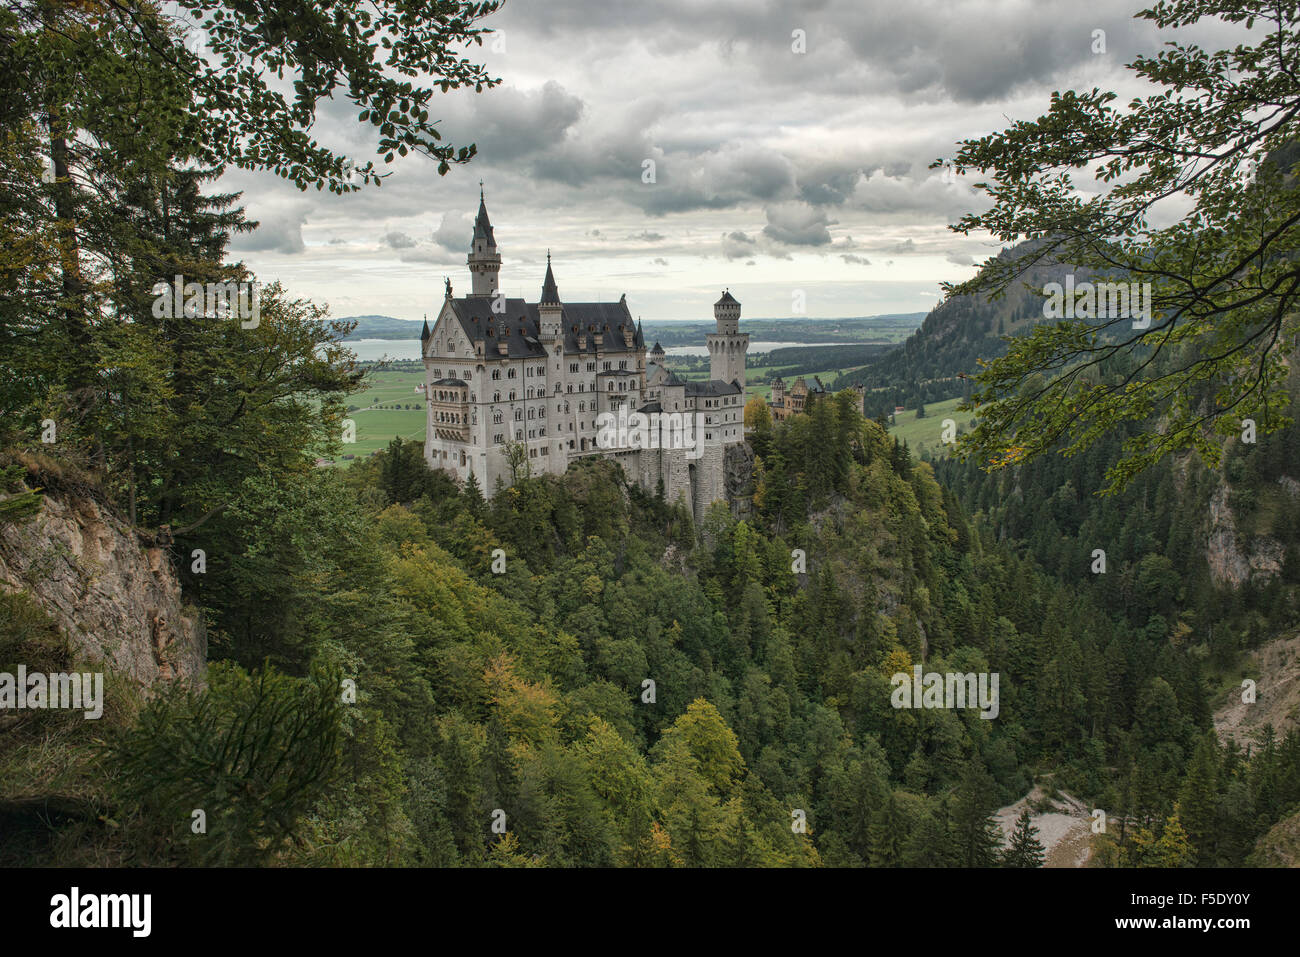 The fairy tale Schloss Neuschwanstein castle in Schwangau, Bavaria, Germany - Stock Image